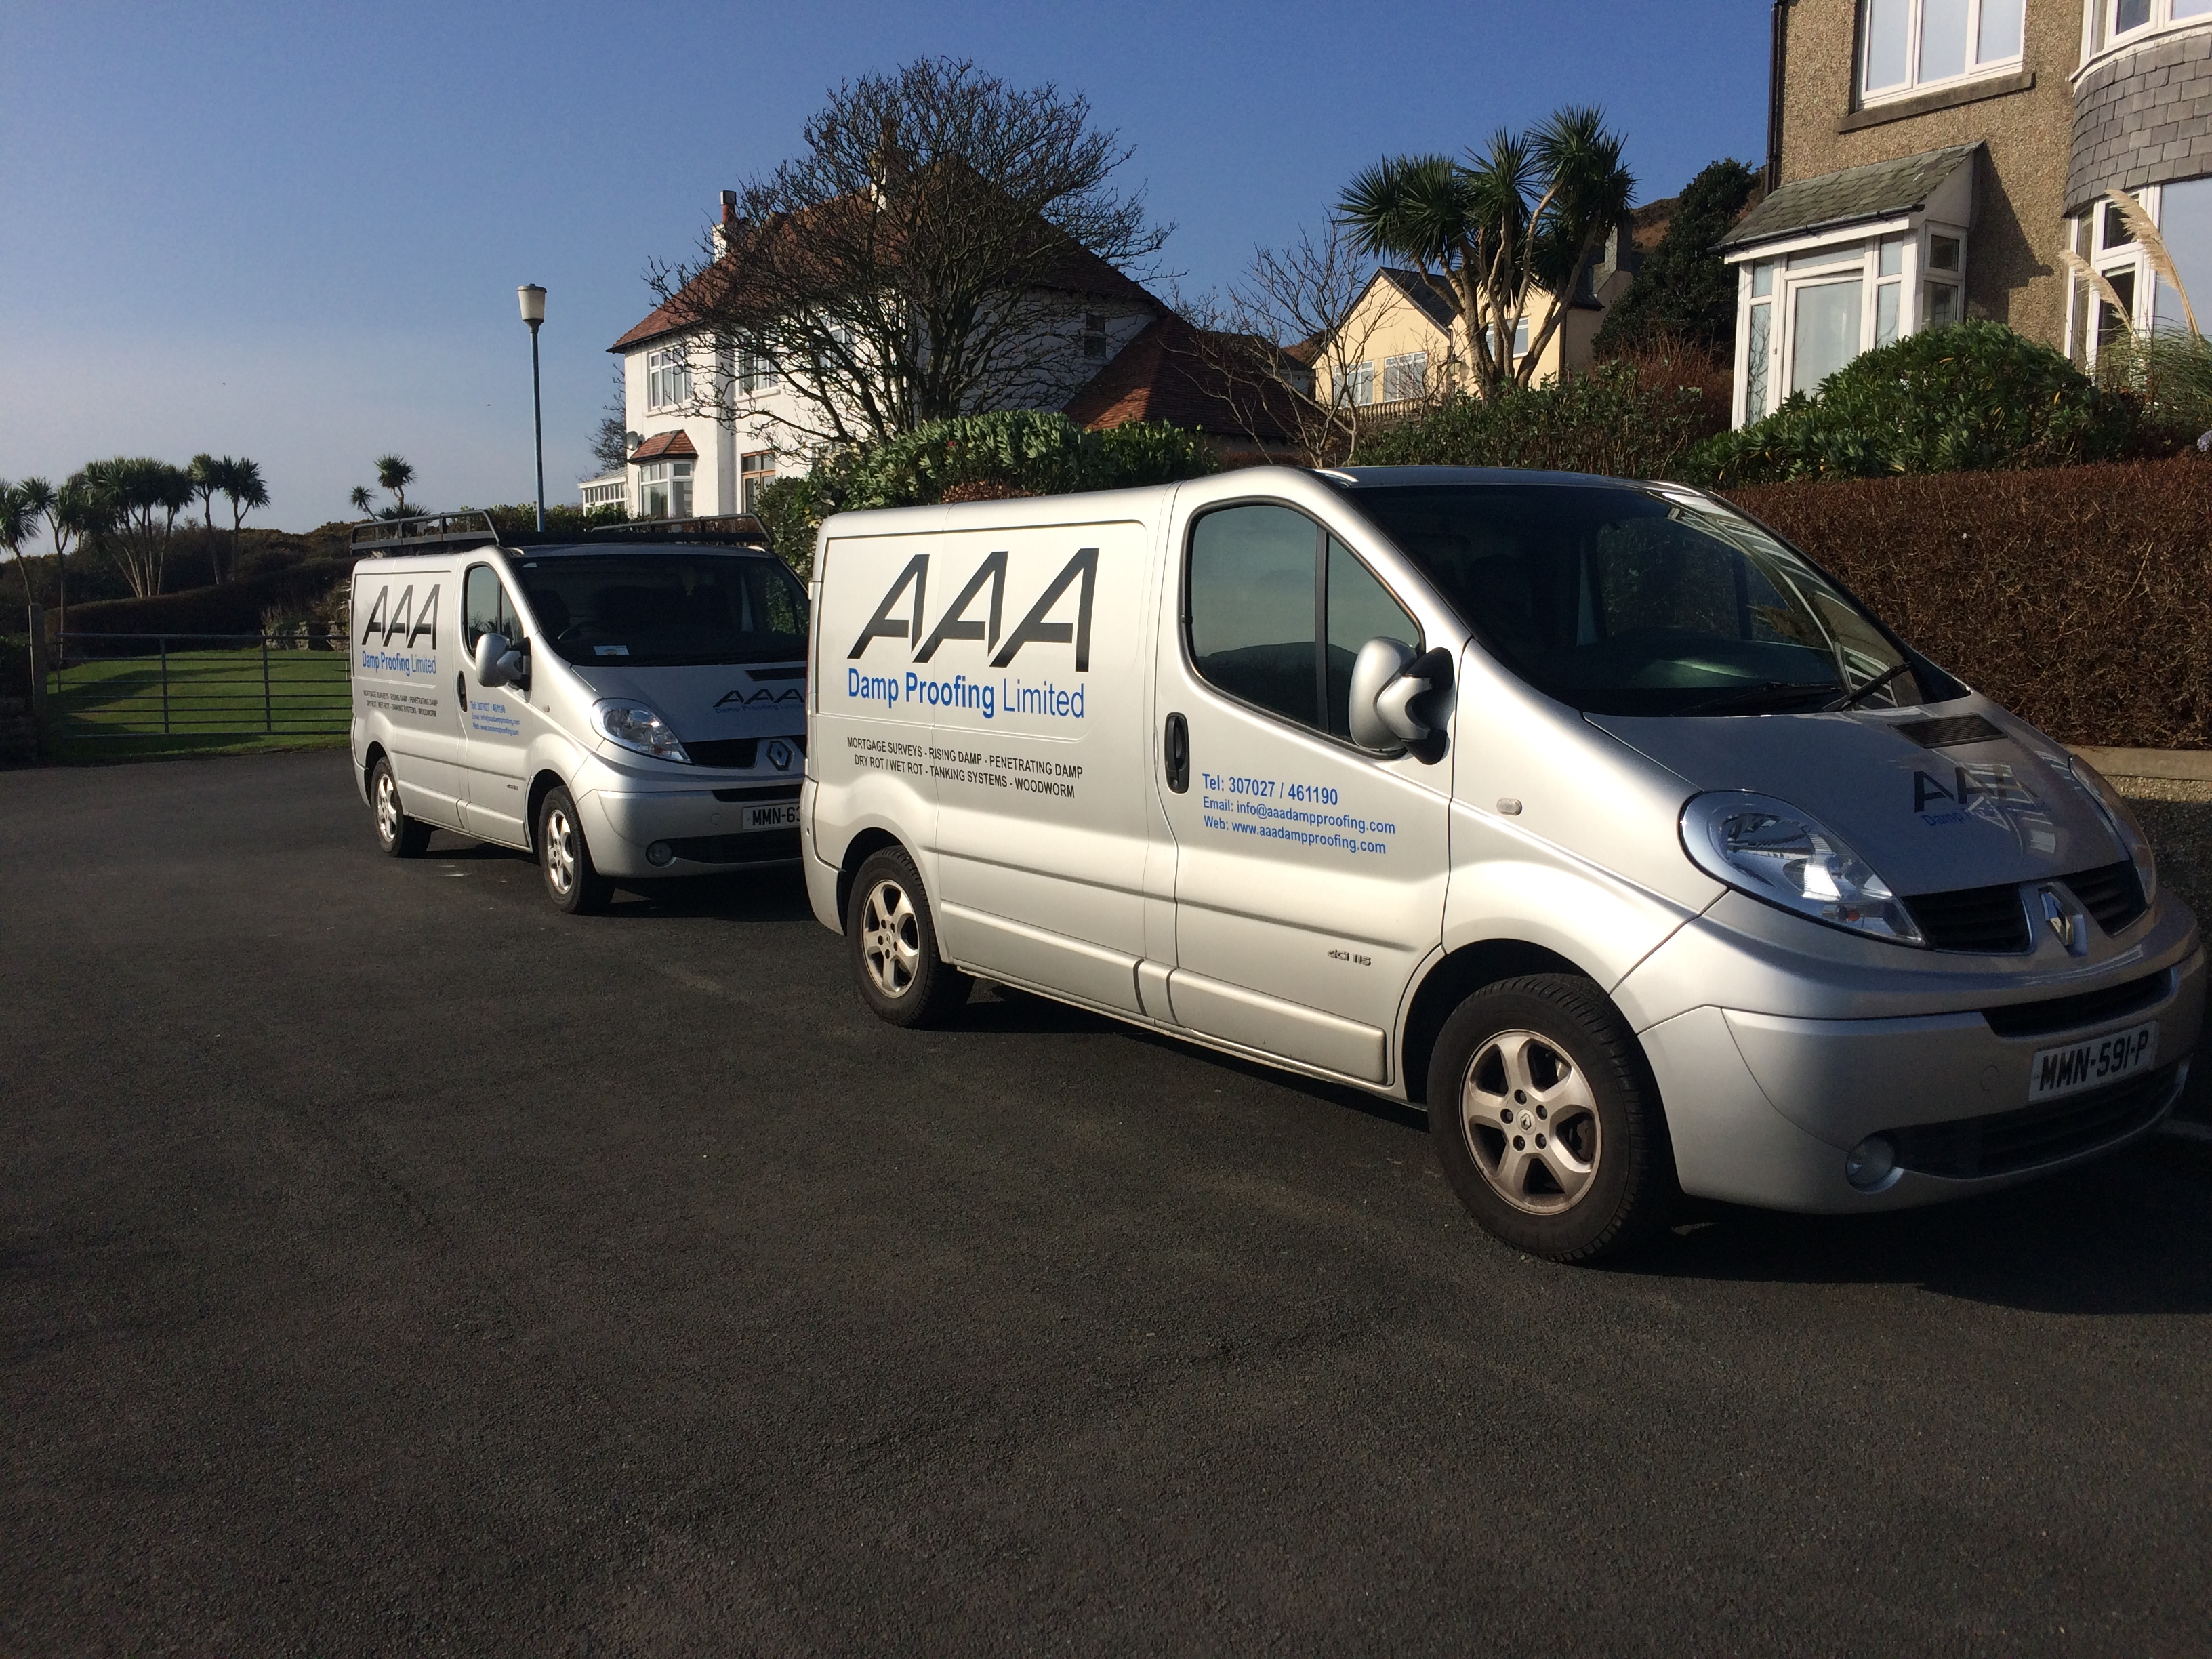 AAA Damp Proofing Limited